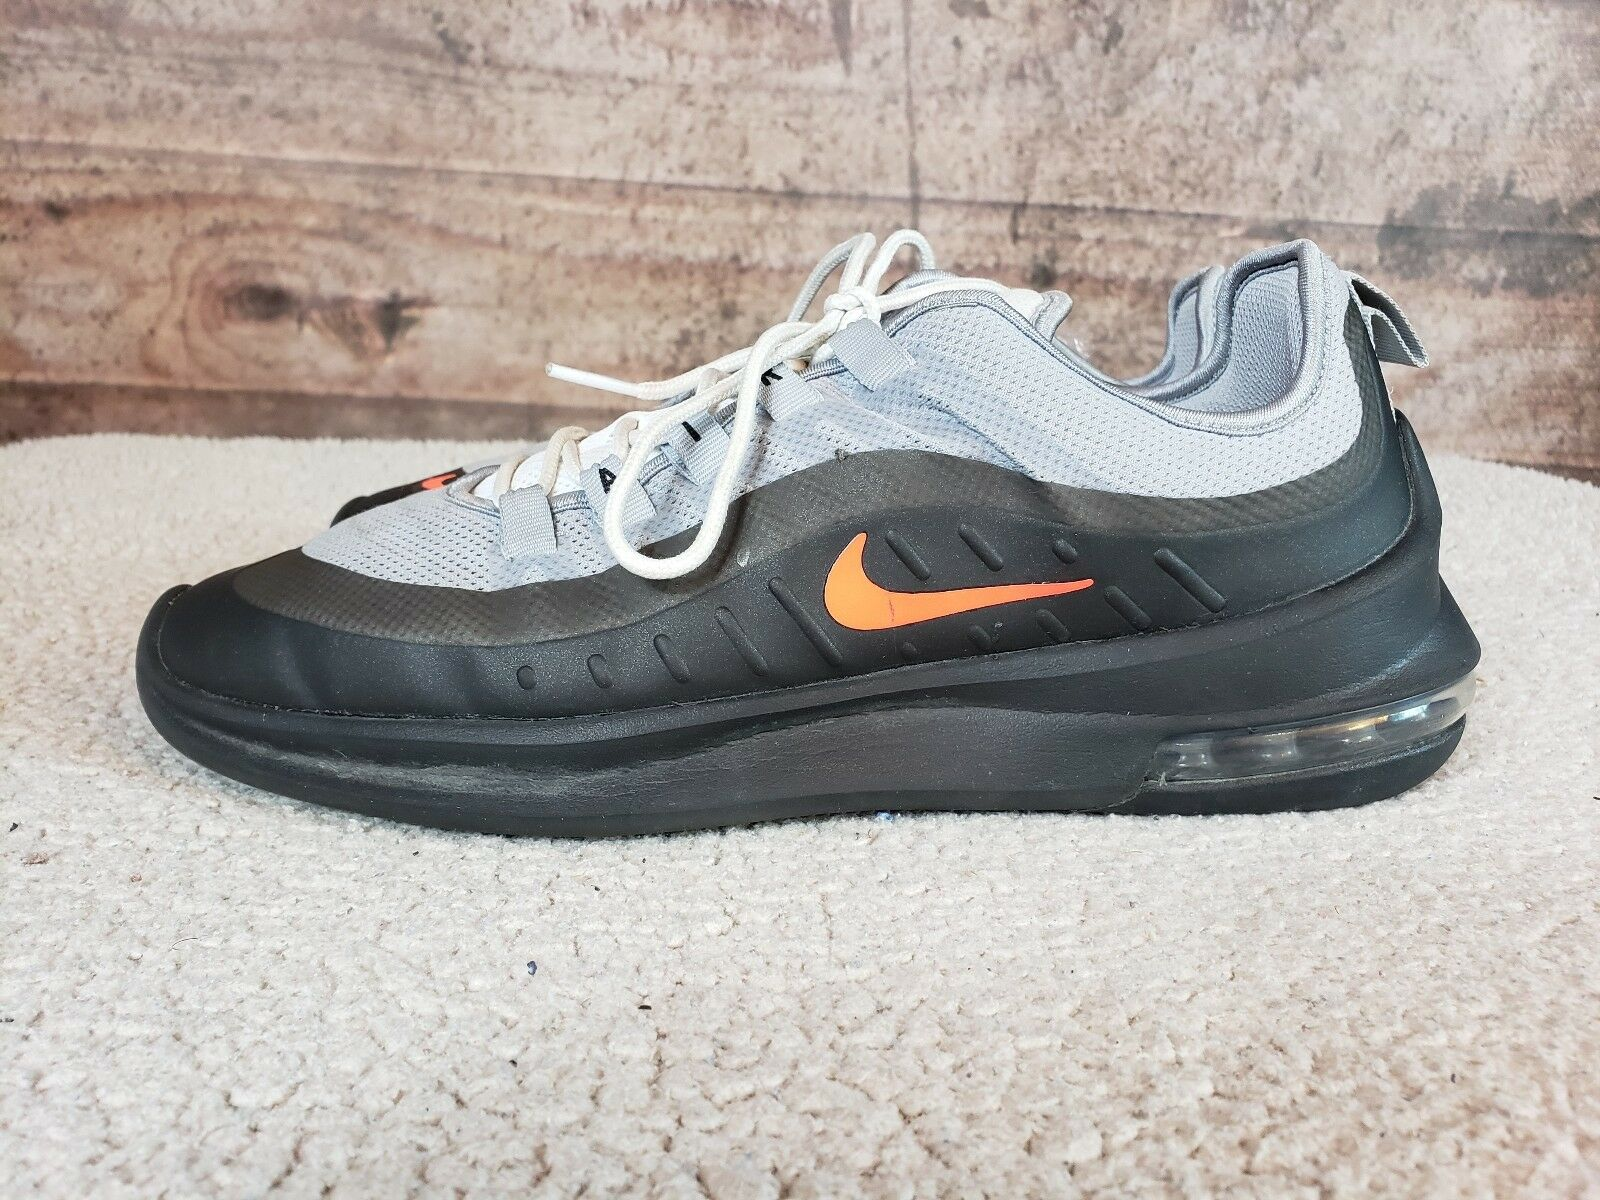 hommes Nike Air Max Axis Casual Running Chaussures in Wolf gris Sz 9